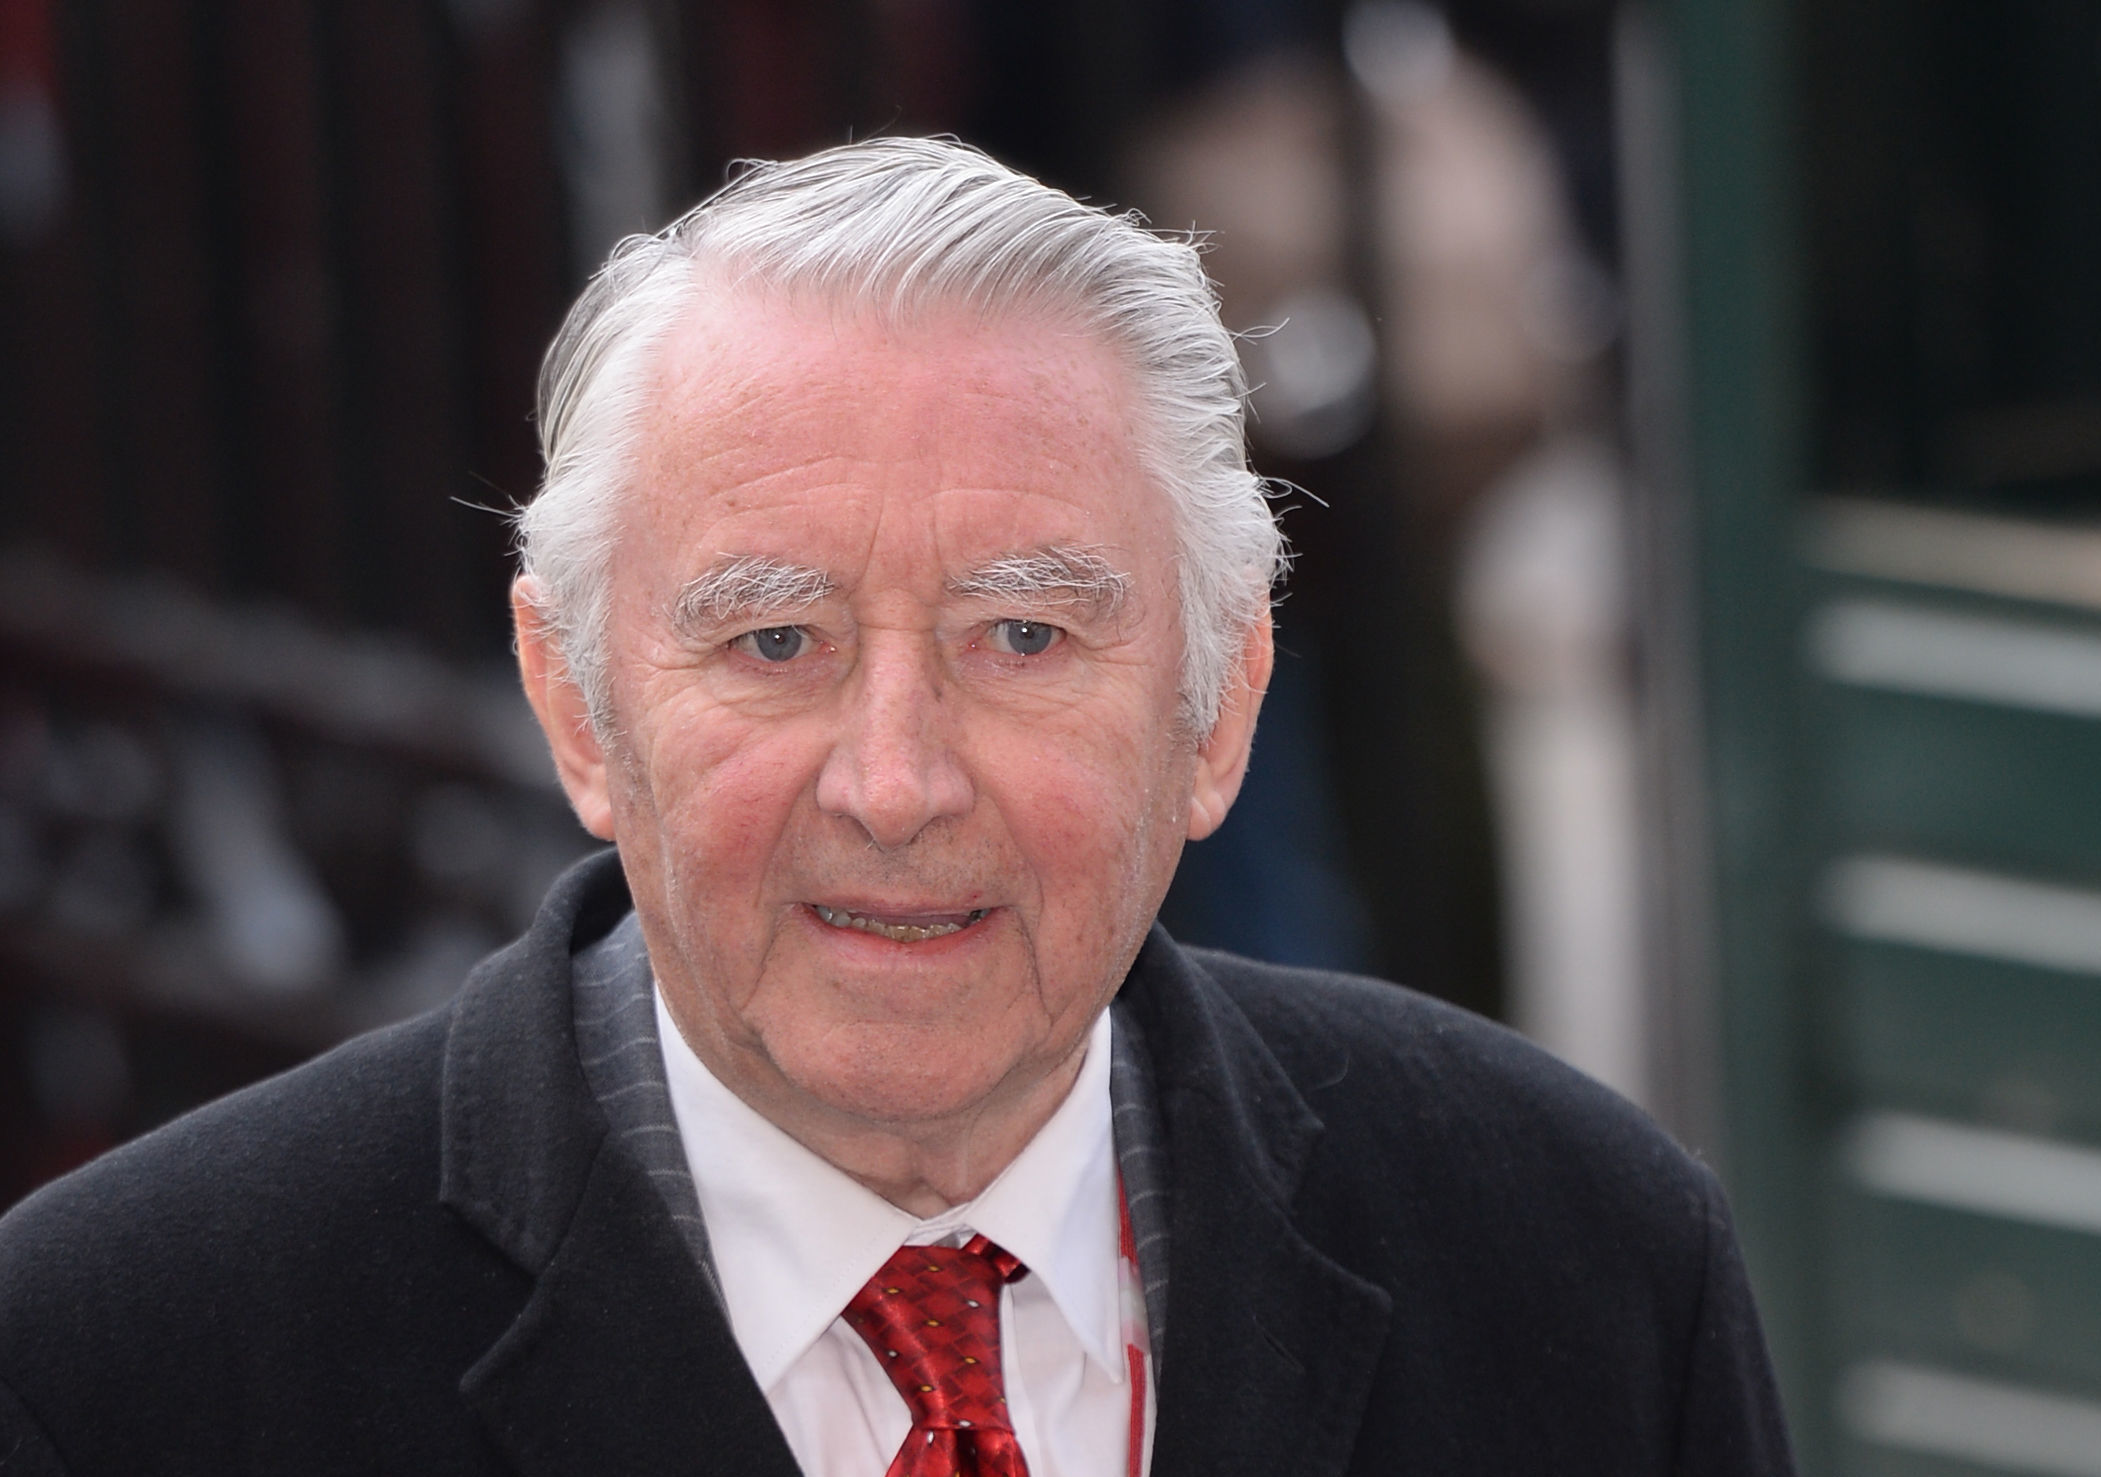 David Steel had been suspended by the LibDems while the probe